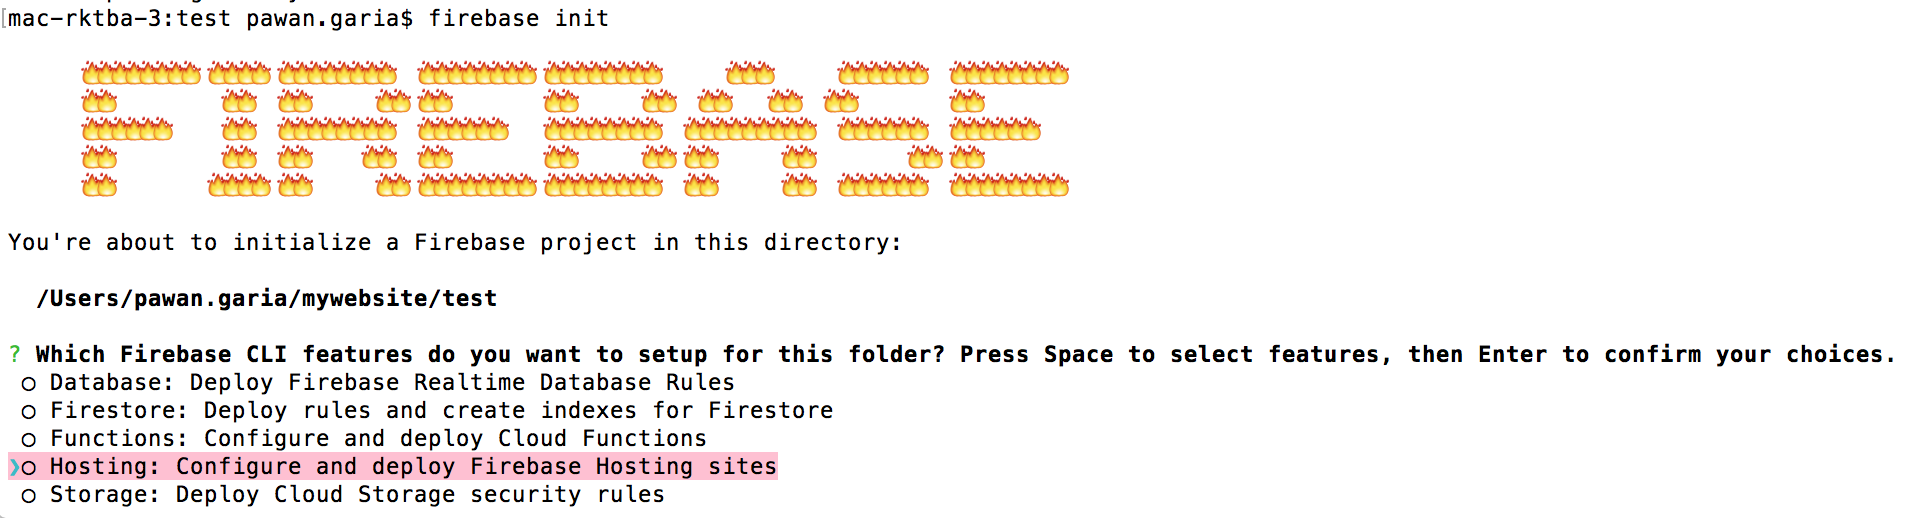 Deploy and host your website on Google Firebase